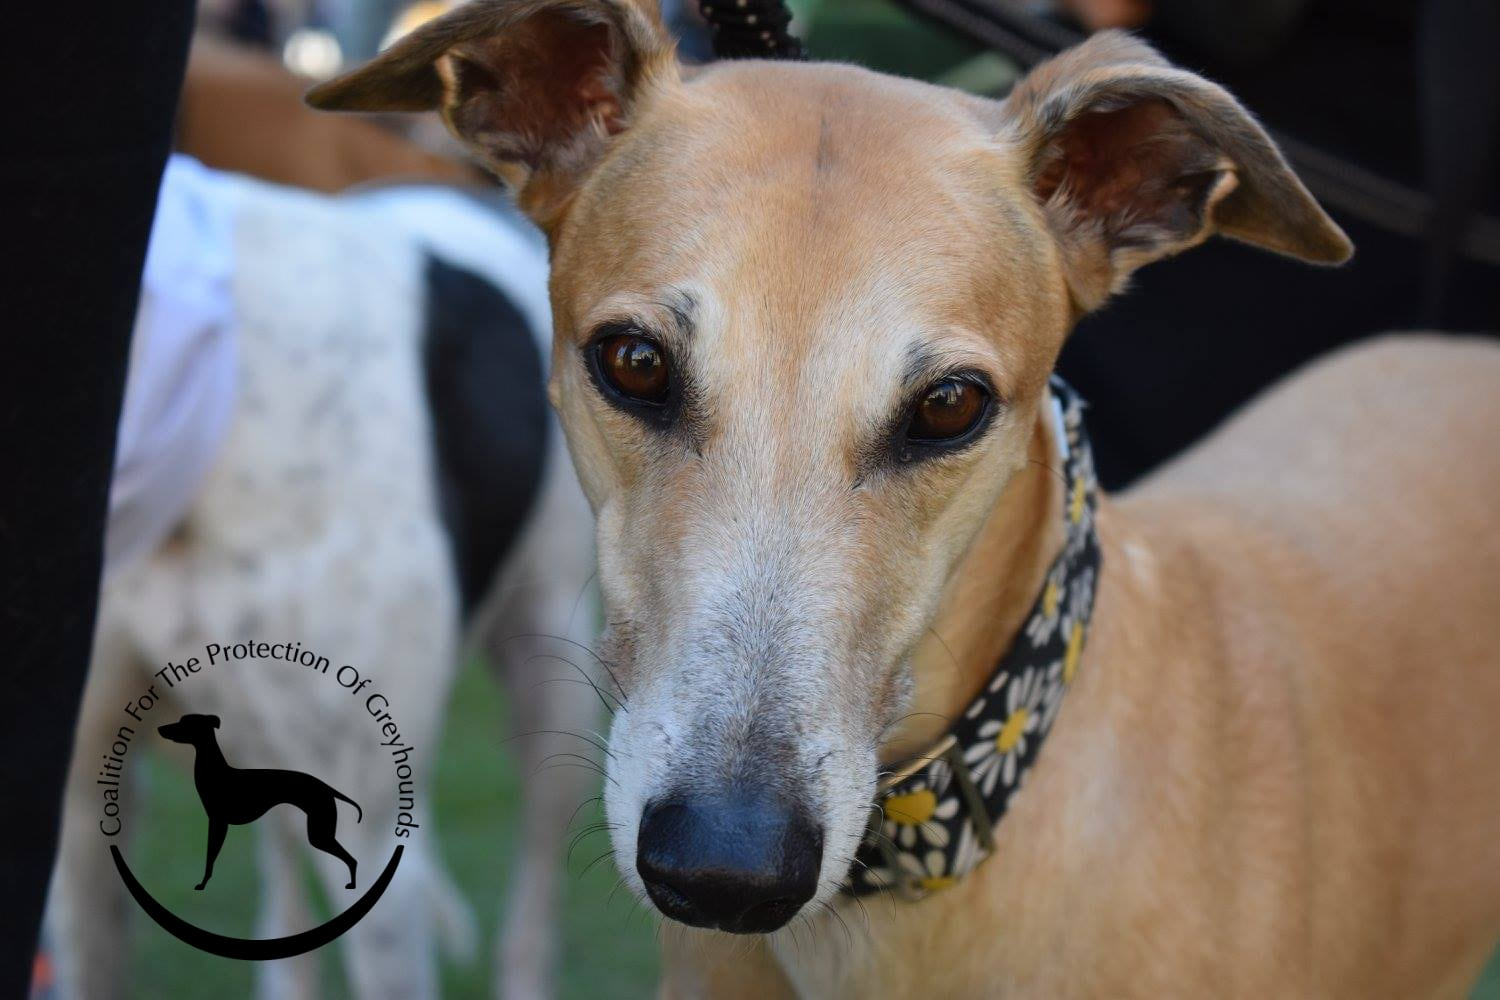 Greyhounds in 2017 – The Good, the Bad, and the Ugly